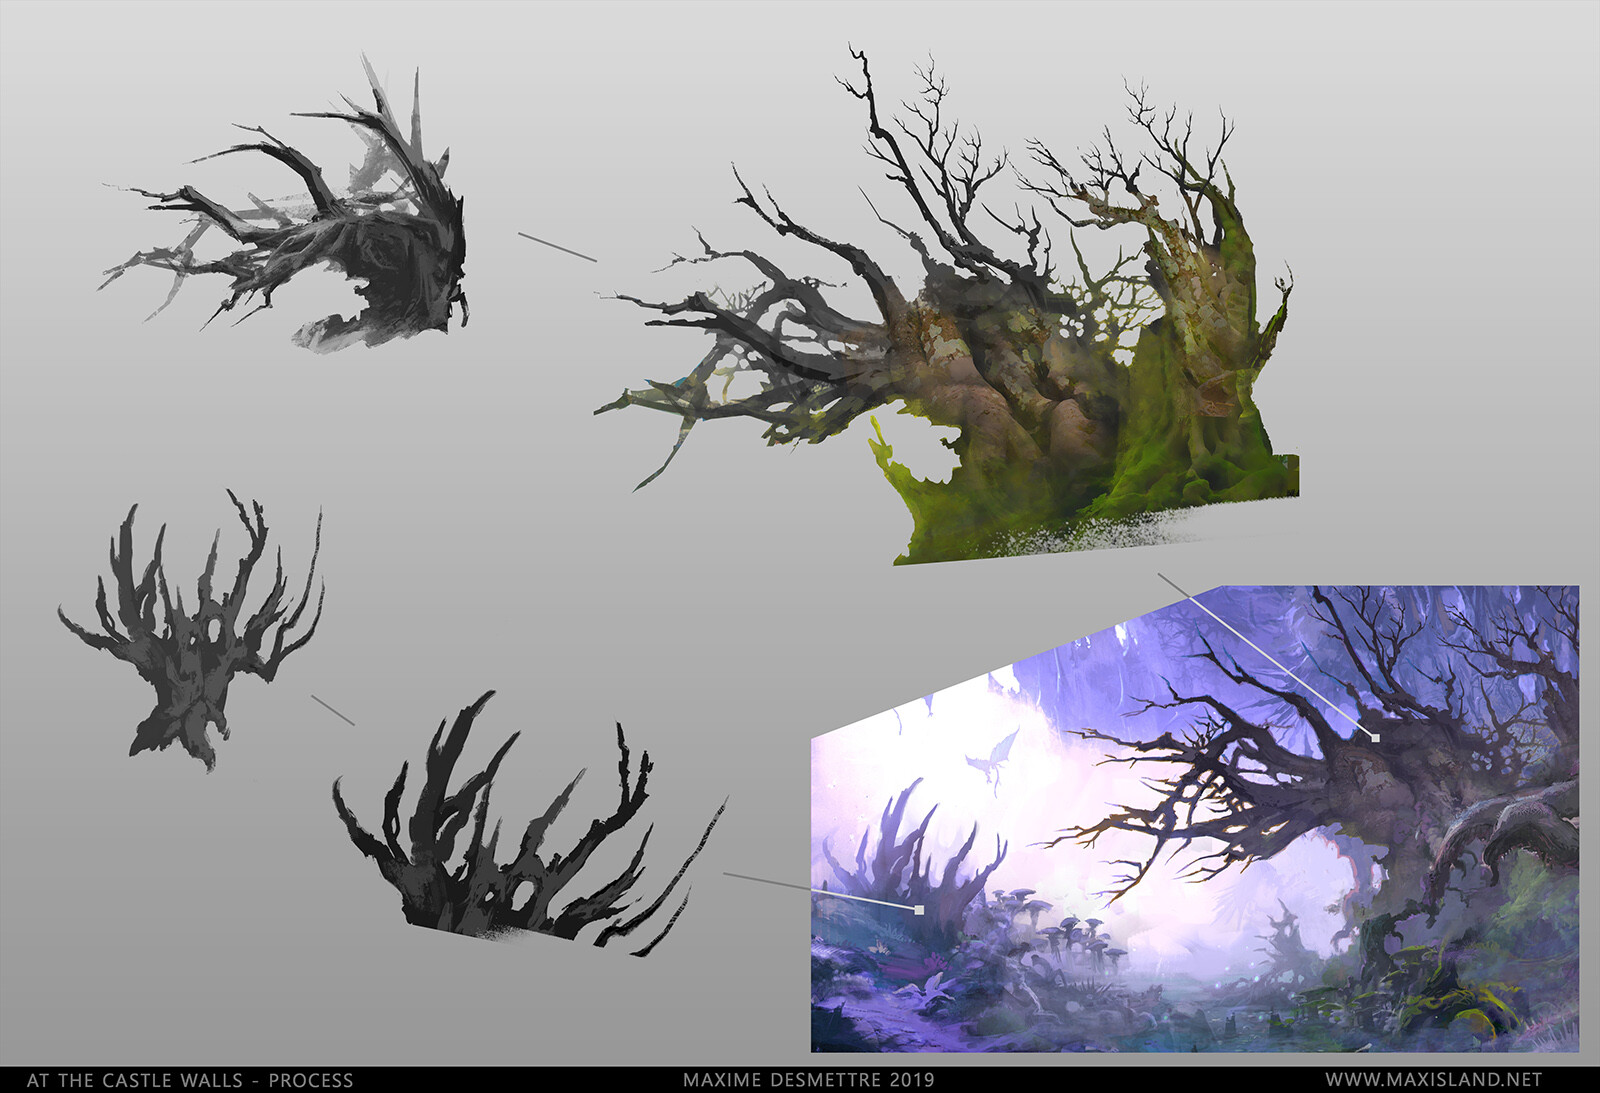 In this example : I'm showing the initial tree shapes that led to the final result. If you're looking for similar shapes to use in your work, have a look at my store :  https://www.artstation.com/maxisland/store